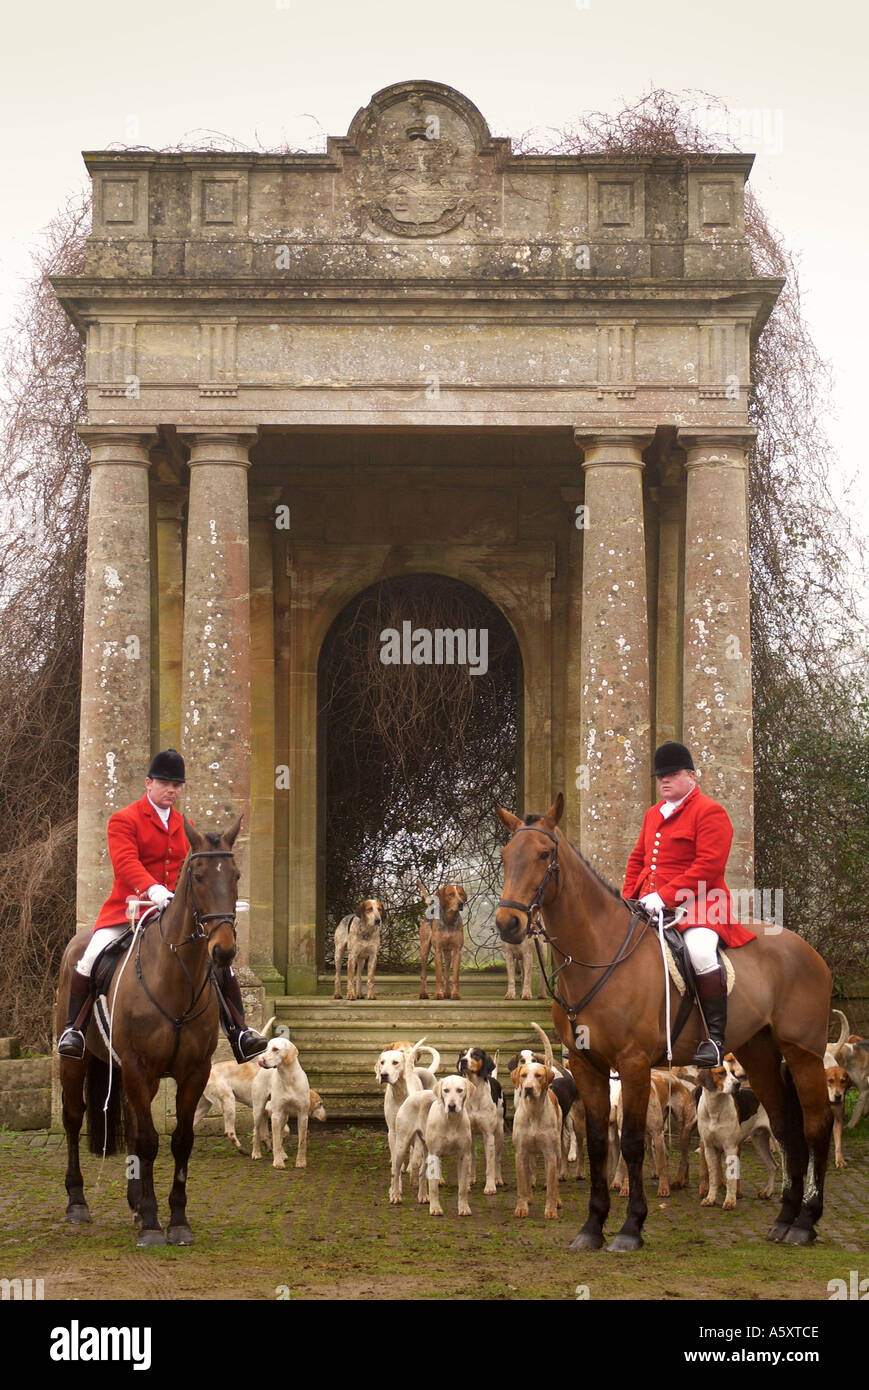 THE AVON VALE HUNT WILTSHIRE UK LAST DAY LEGAL HUNTING 17 FEB 2005 MASTER FOXHOUNDS JONATHON SEED RIGHT AND KENNEL HUNTSMAN MALC - Stock Image